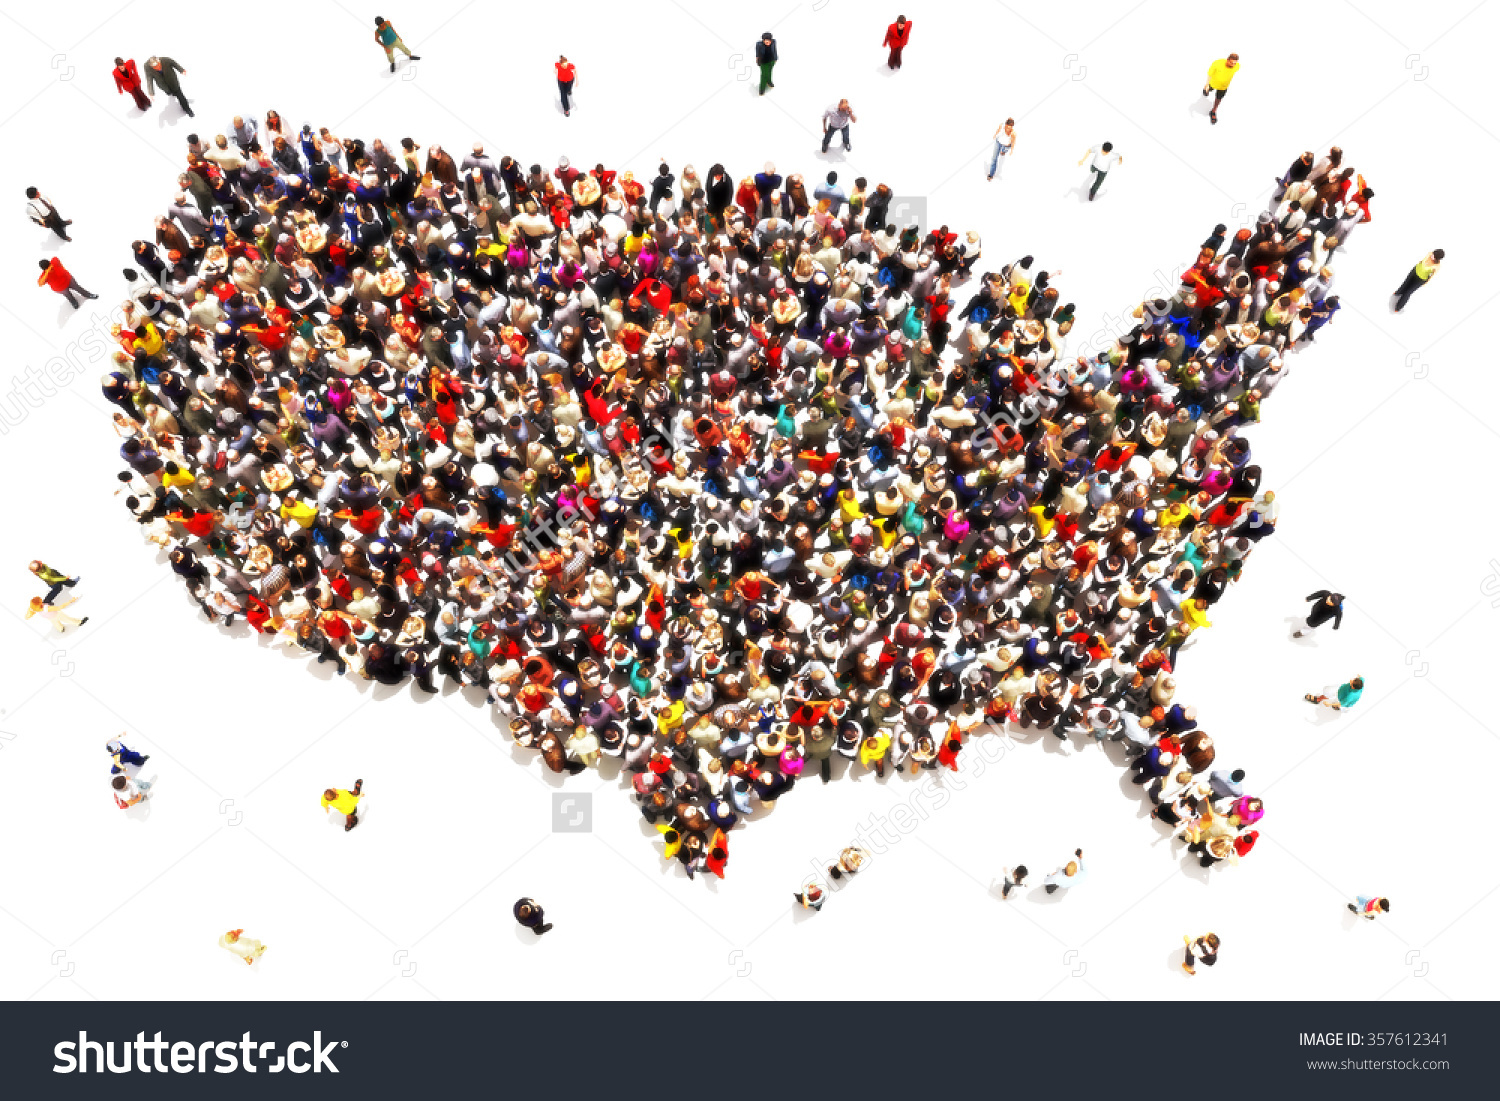 Clipartfest usa population standing. Clipart people of united states